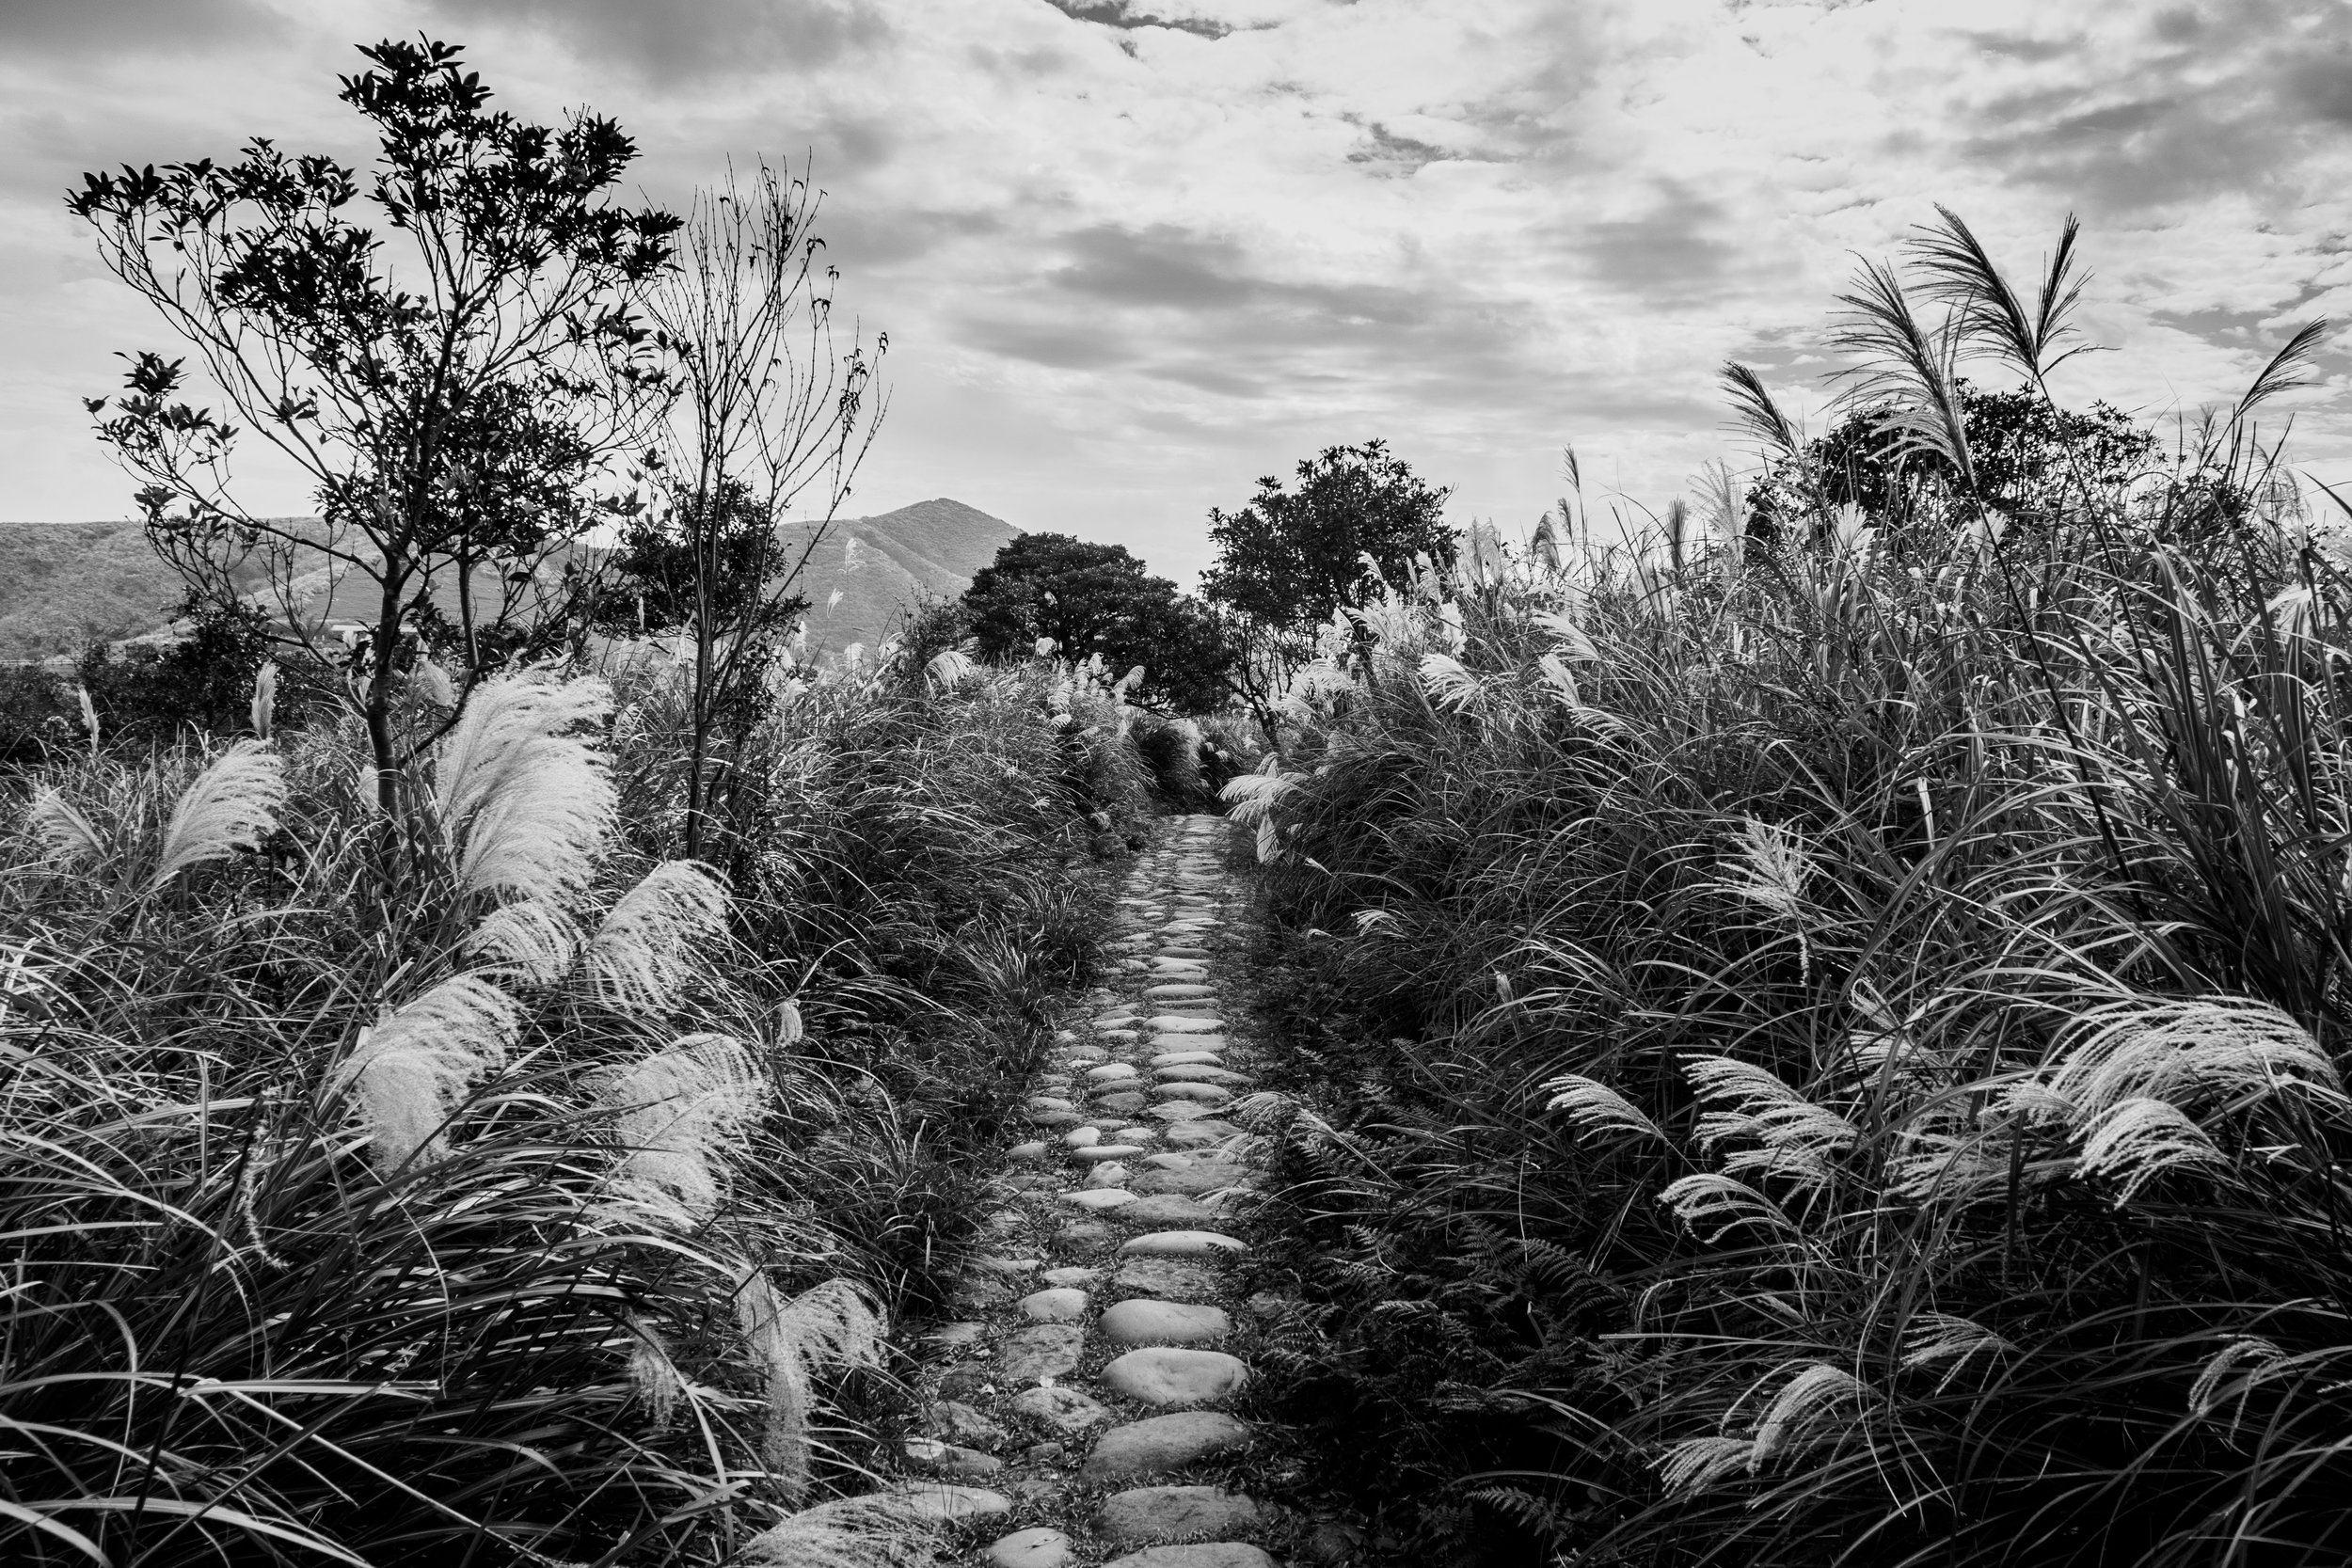 The path to the pastures. f5.6, ISO 200, 1/160, 24mm